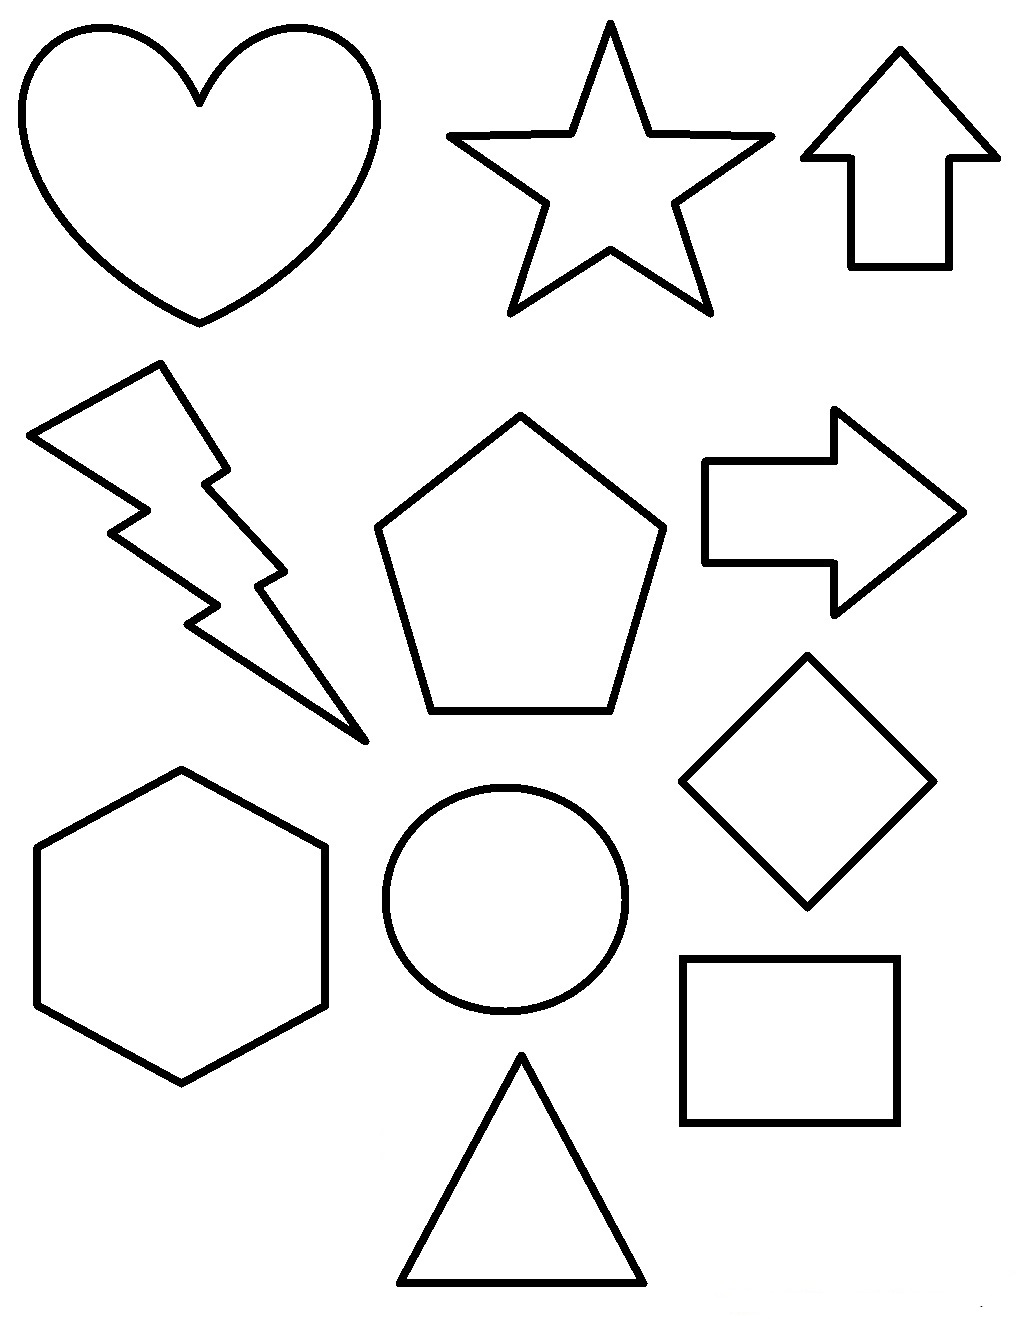 shapes coloring book printable shapes coloring pages for kids cool2bkids shapes book coloring 1 1